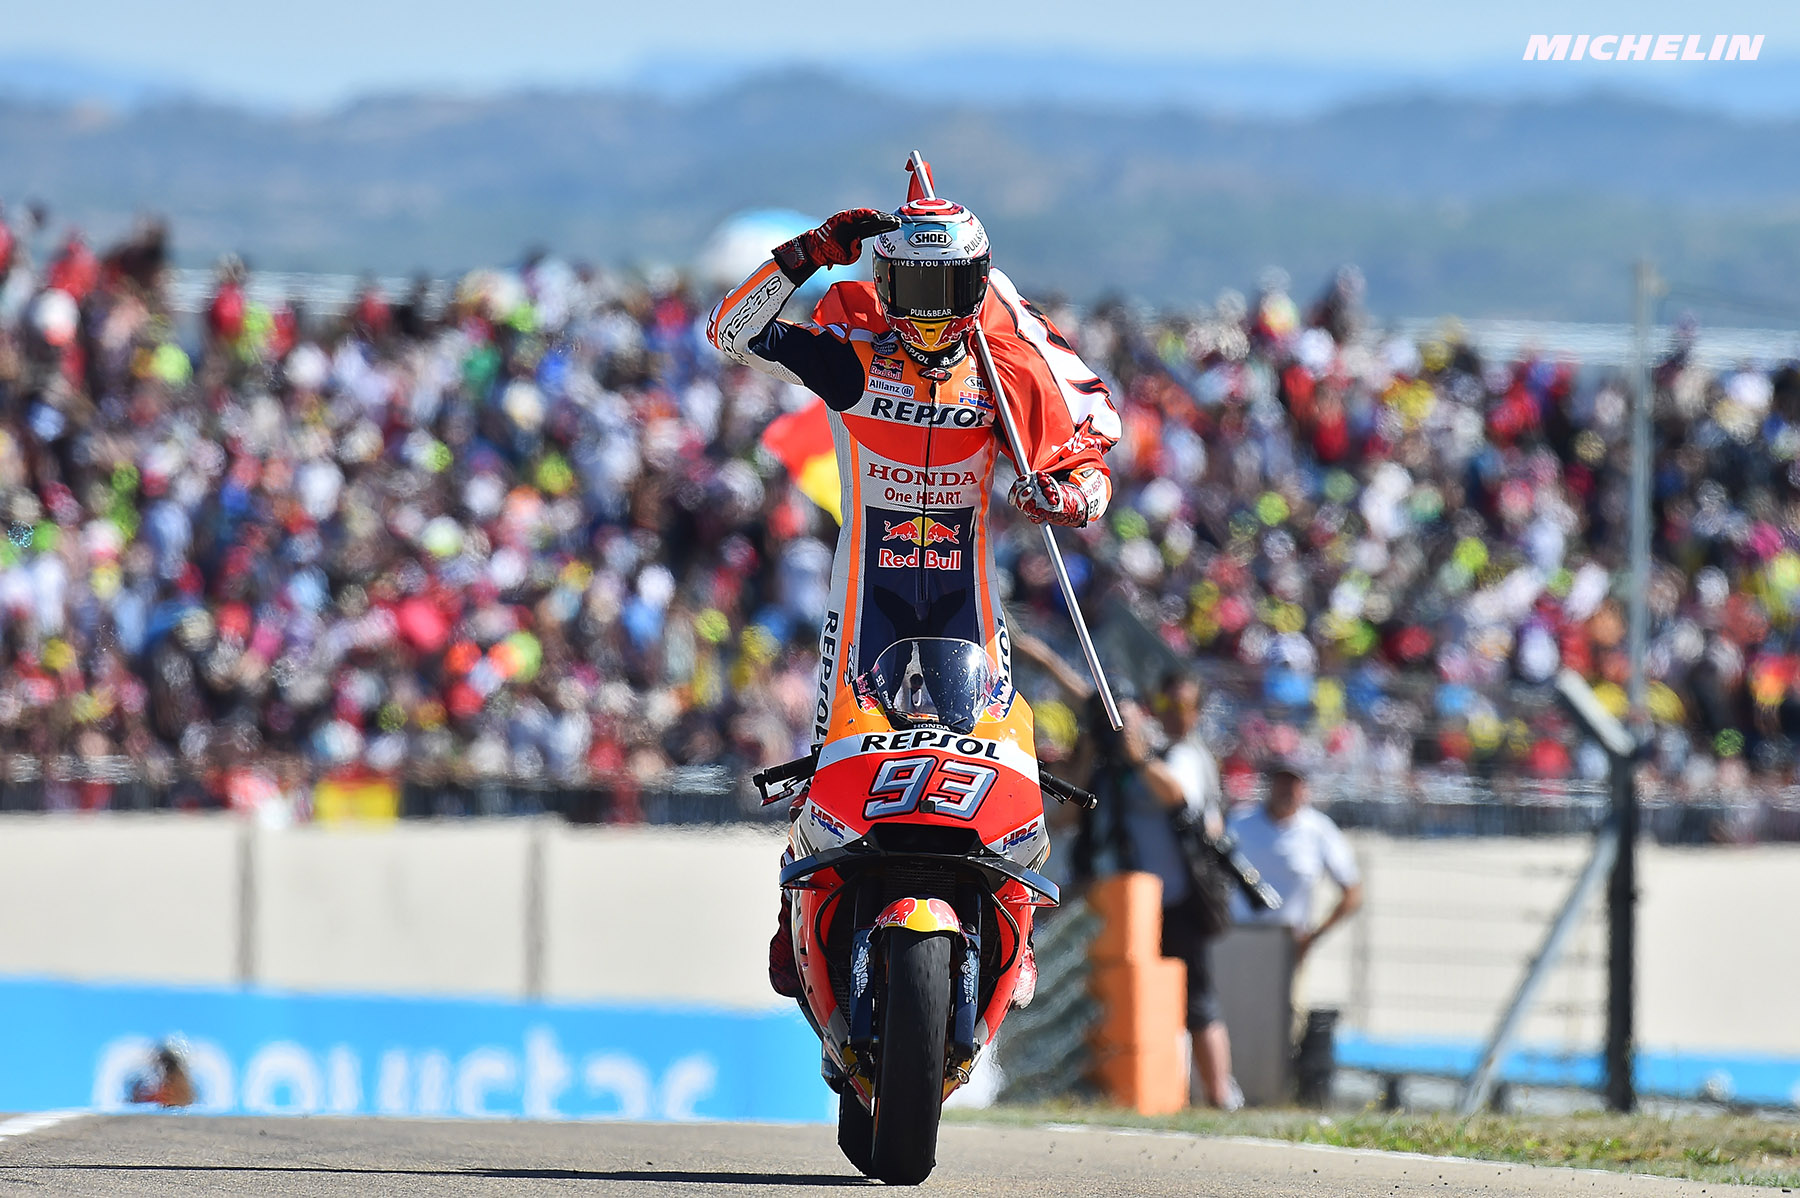 MotoGP™: Márquez (Repsol Honda Team/ Michelin) resumes winning ways at Aragon